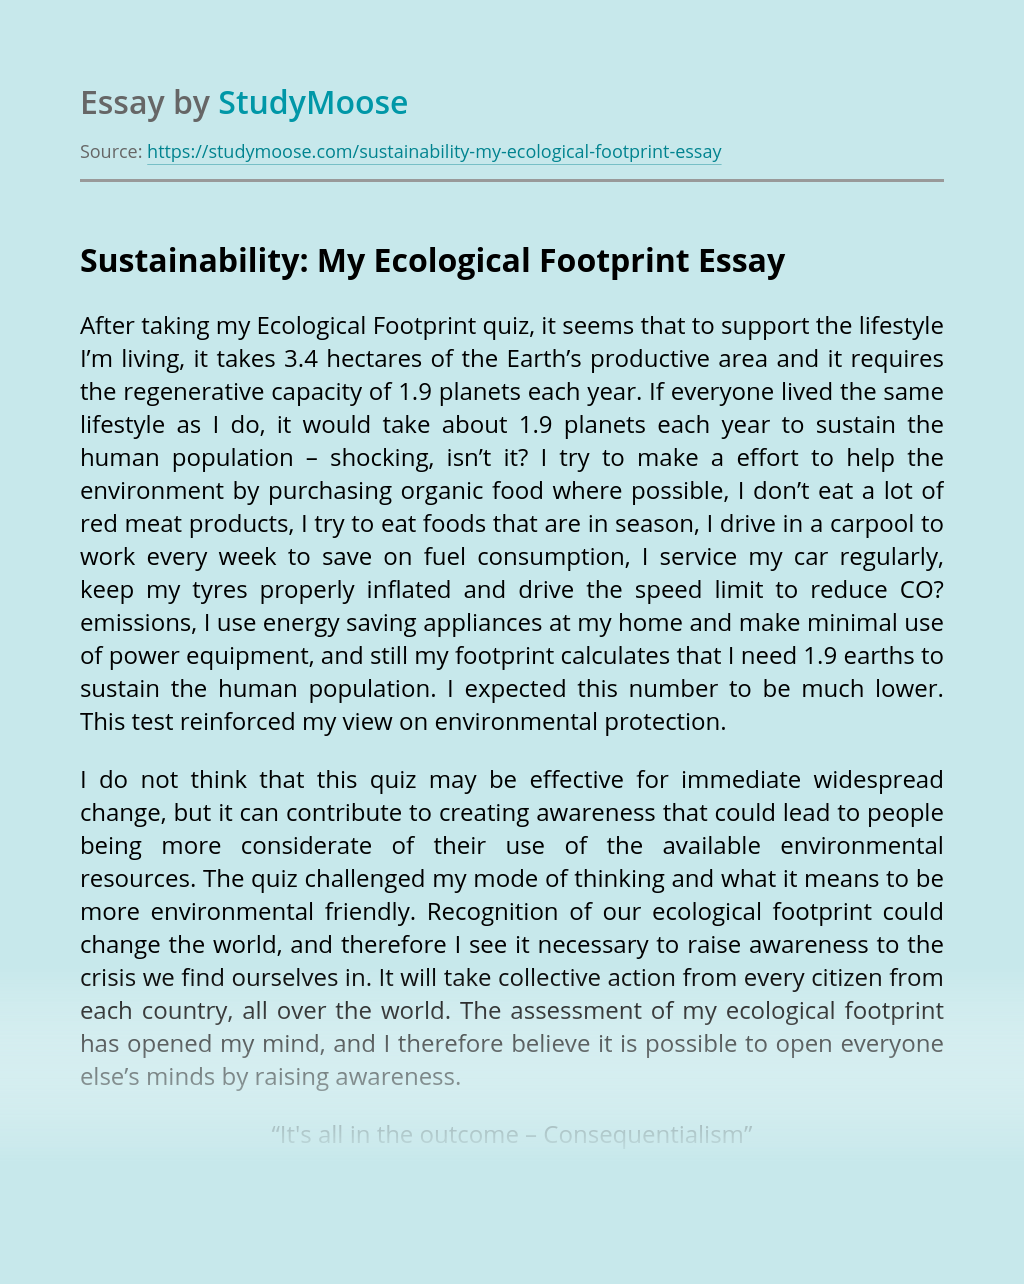 Sustainability: My Ecological Footprint